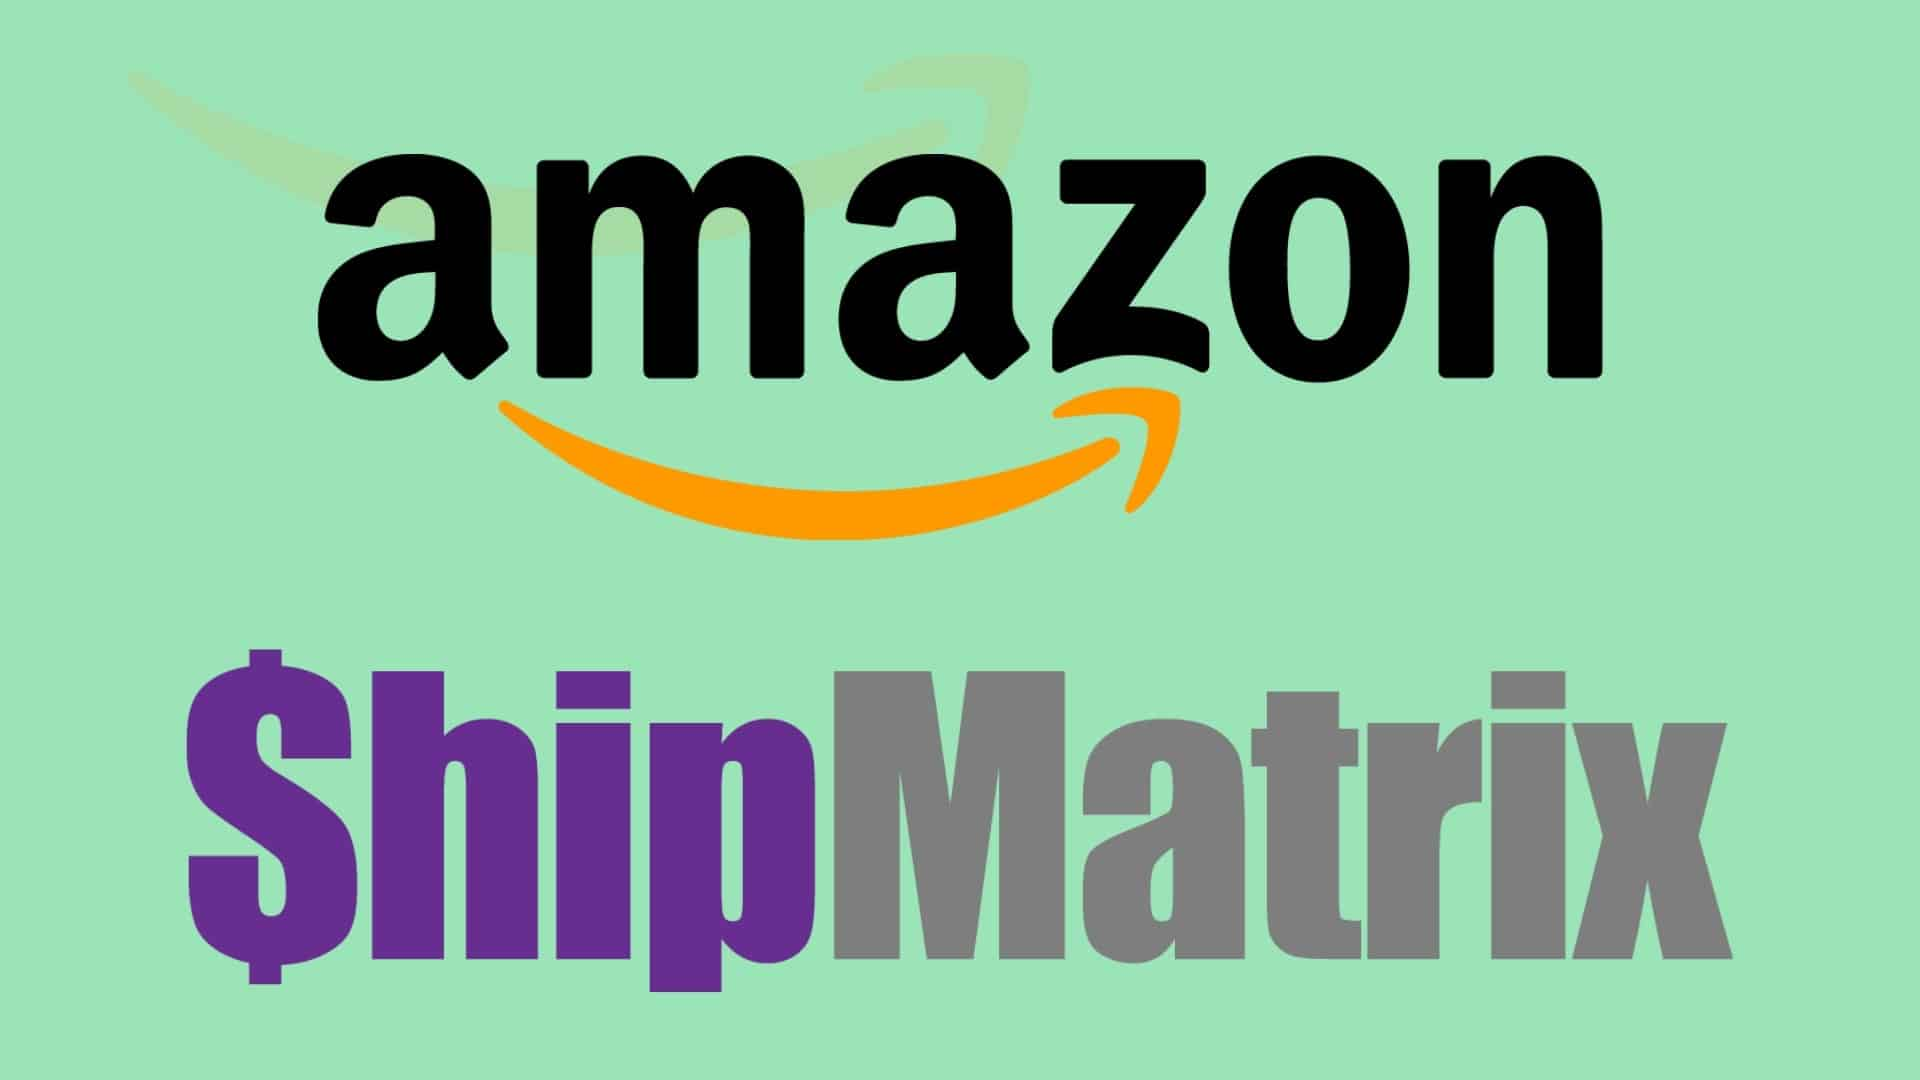 Amazon Denies ShipMatrix Claims About Fall in On-time Delivery Rates